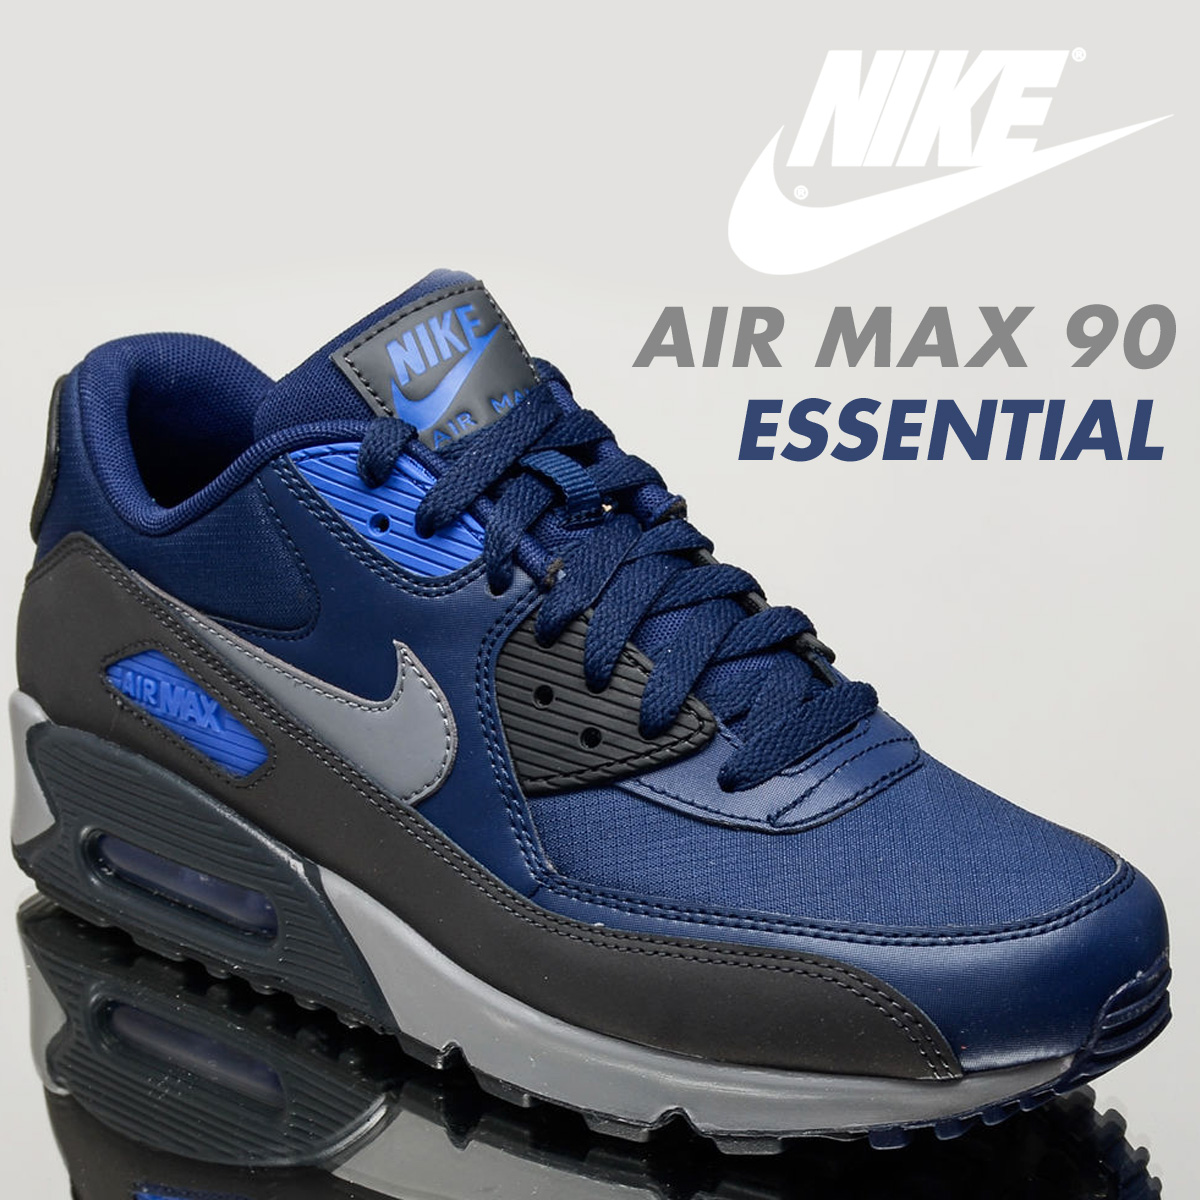 quality design f8394 4eaac Nike NIKE Air Max 90 essential sneakers AIR MAX 90 ESSENTIAL 537,384-422  men's shoes navy [load planned Shinnyu load in reservation product 8/30 ...